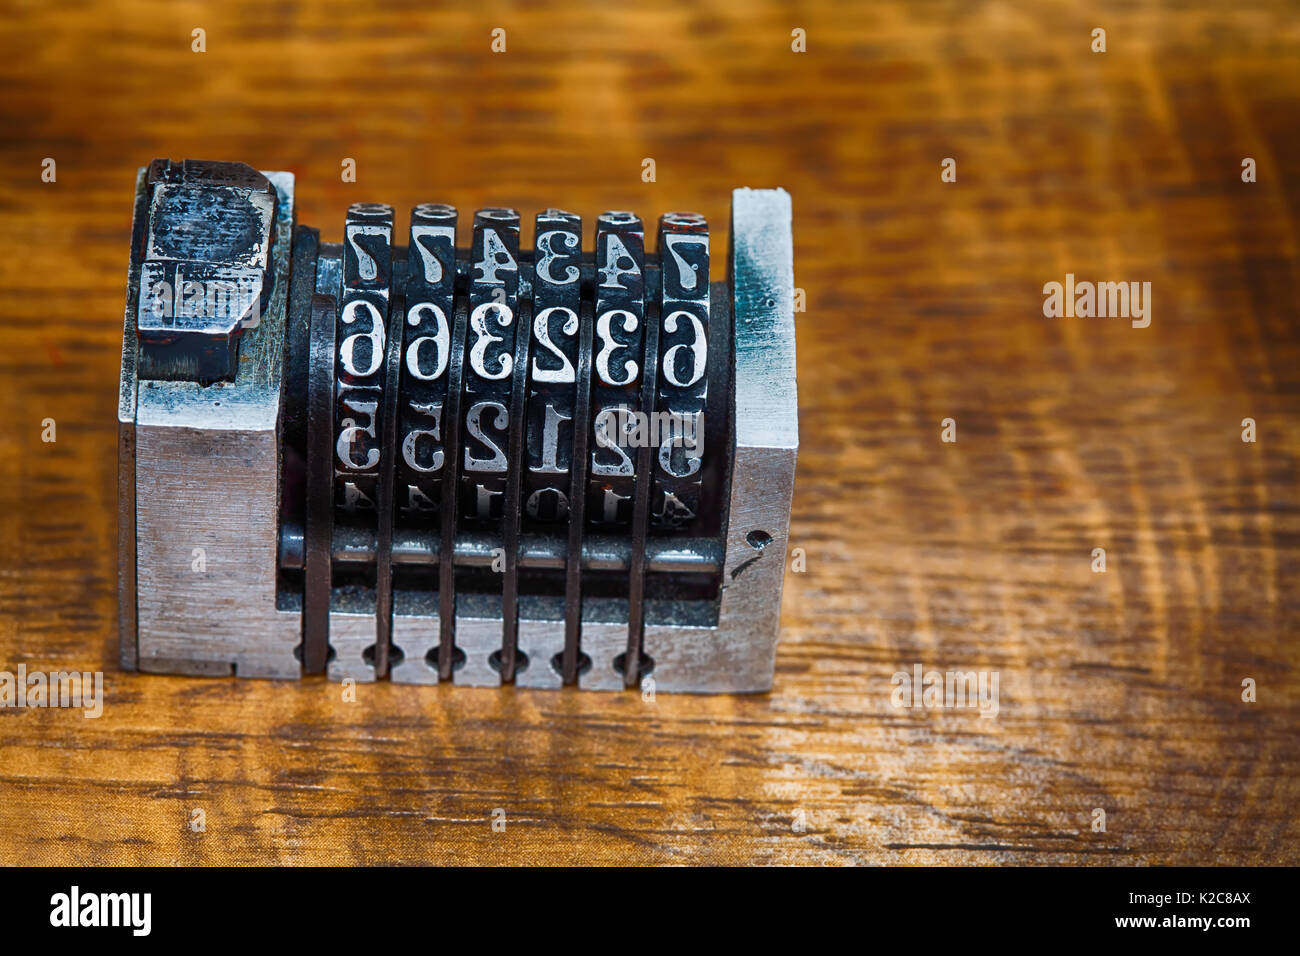 Cliche stamp with numbers Vintage metallic counter mechanism on wood patten table. Calculator conceptual image. close-up, shallow depth of field, soft focus - Stock Image